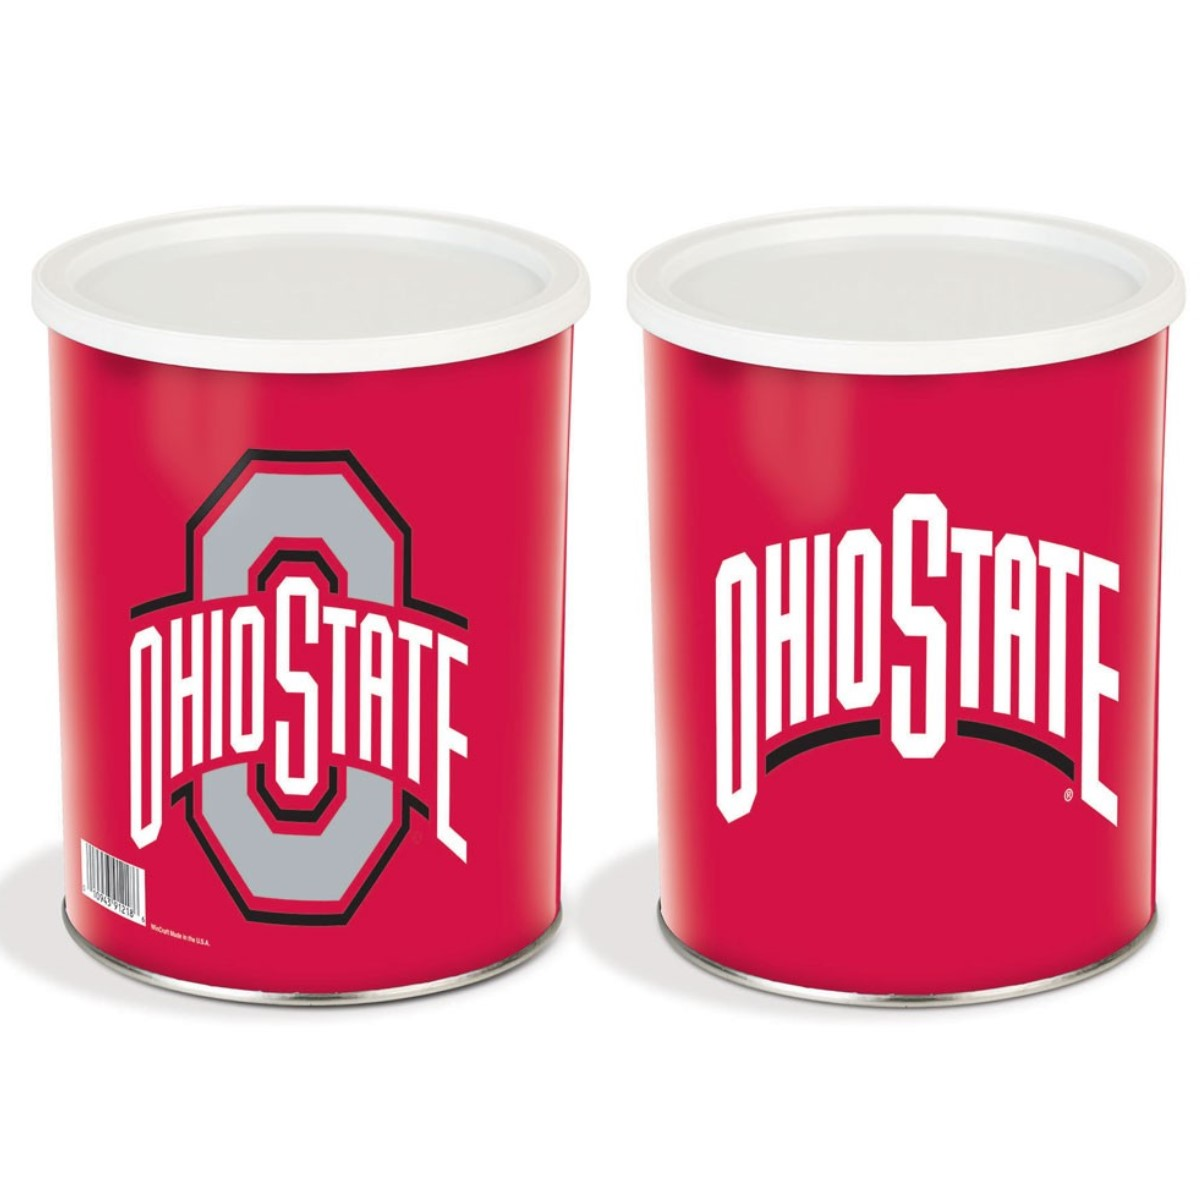 Ohio State Gourmet Popcorn Tin - 1 Gallon